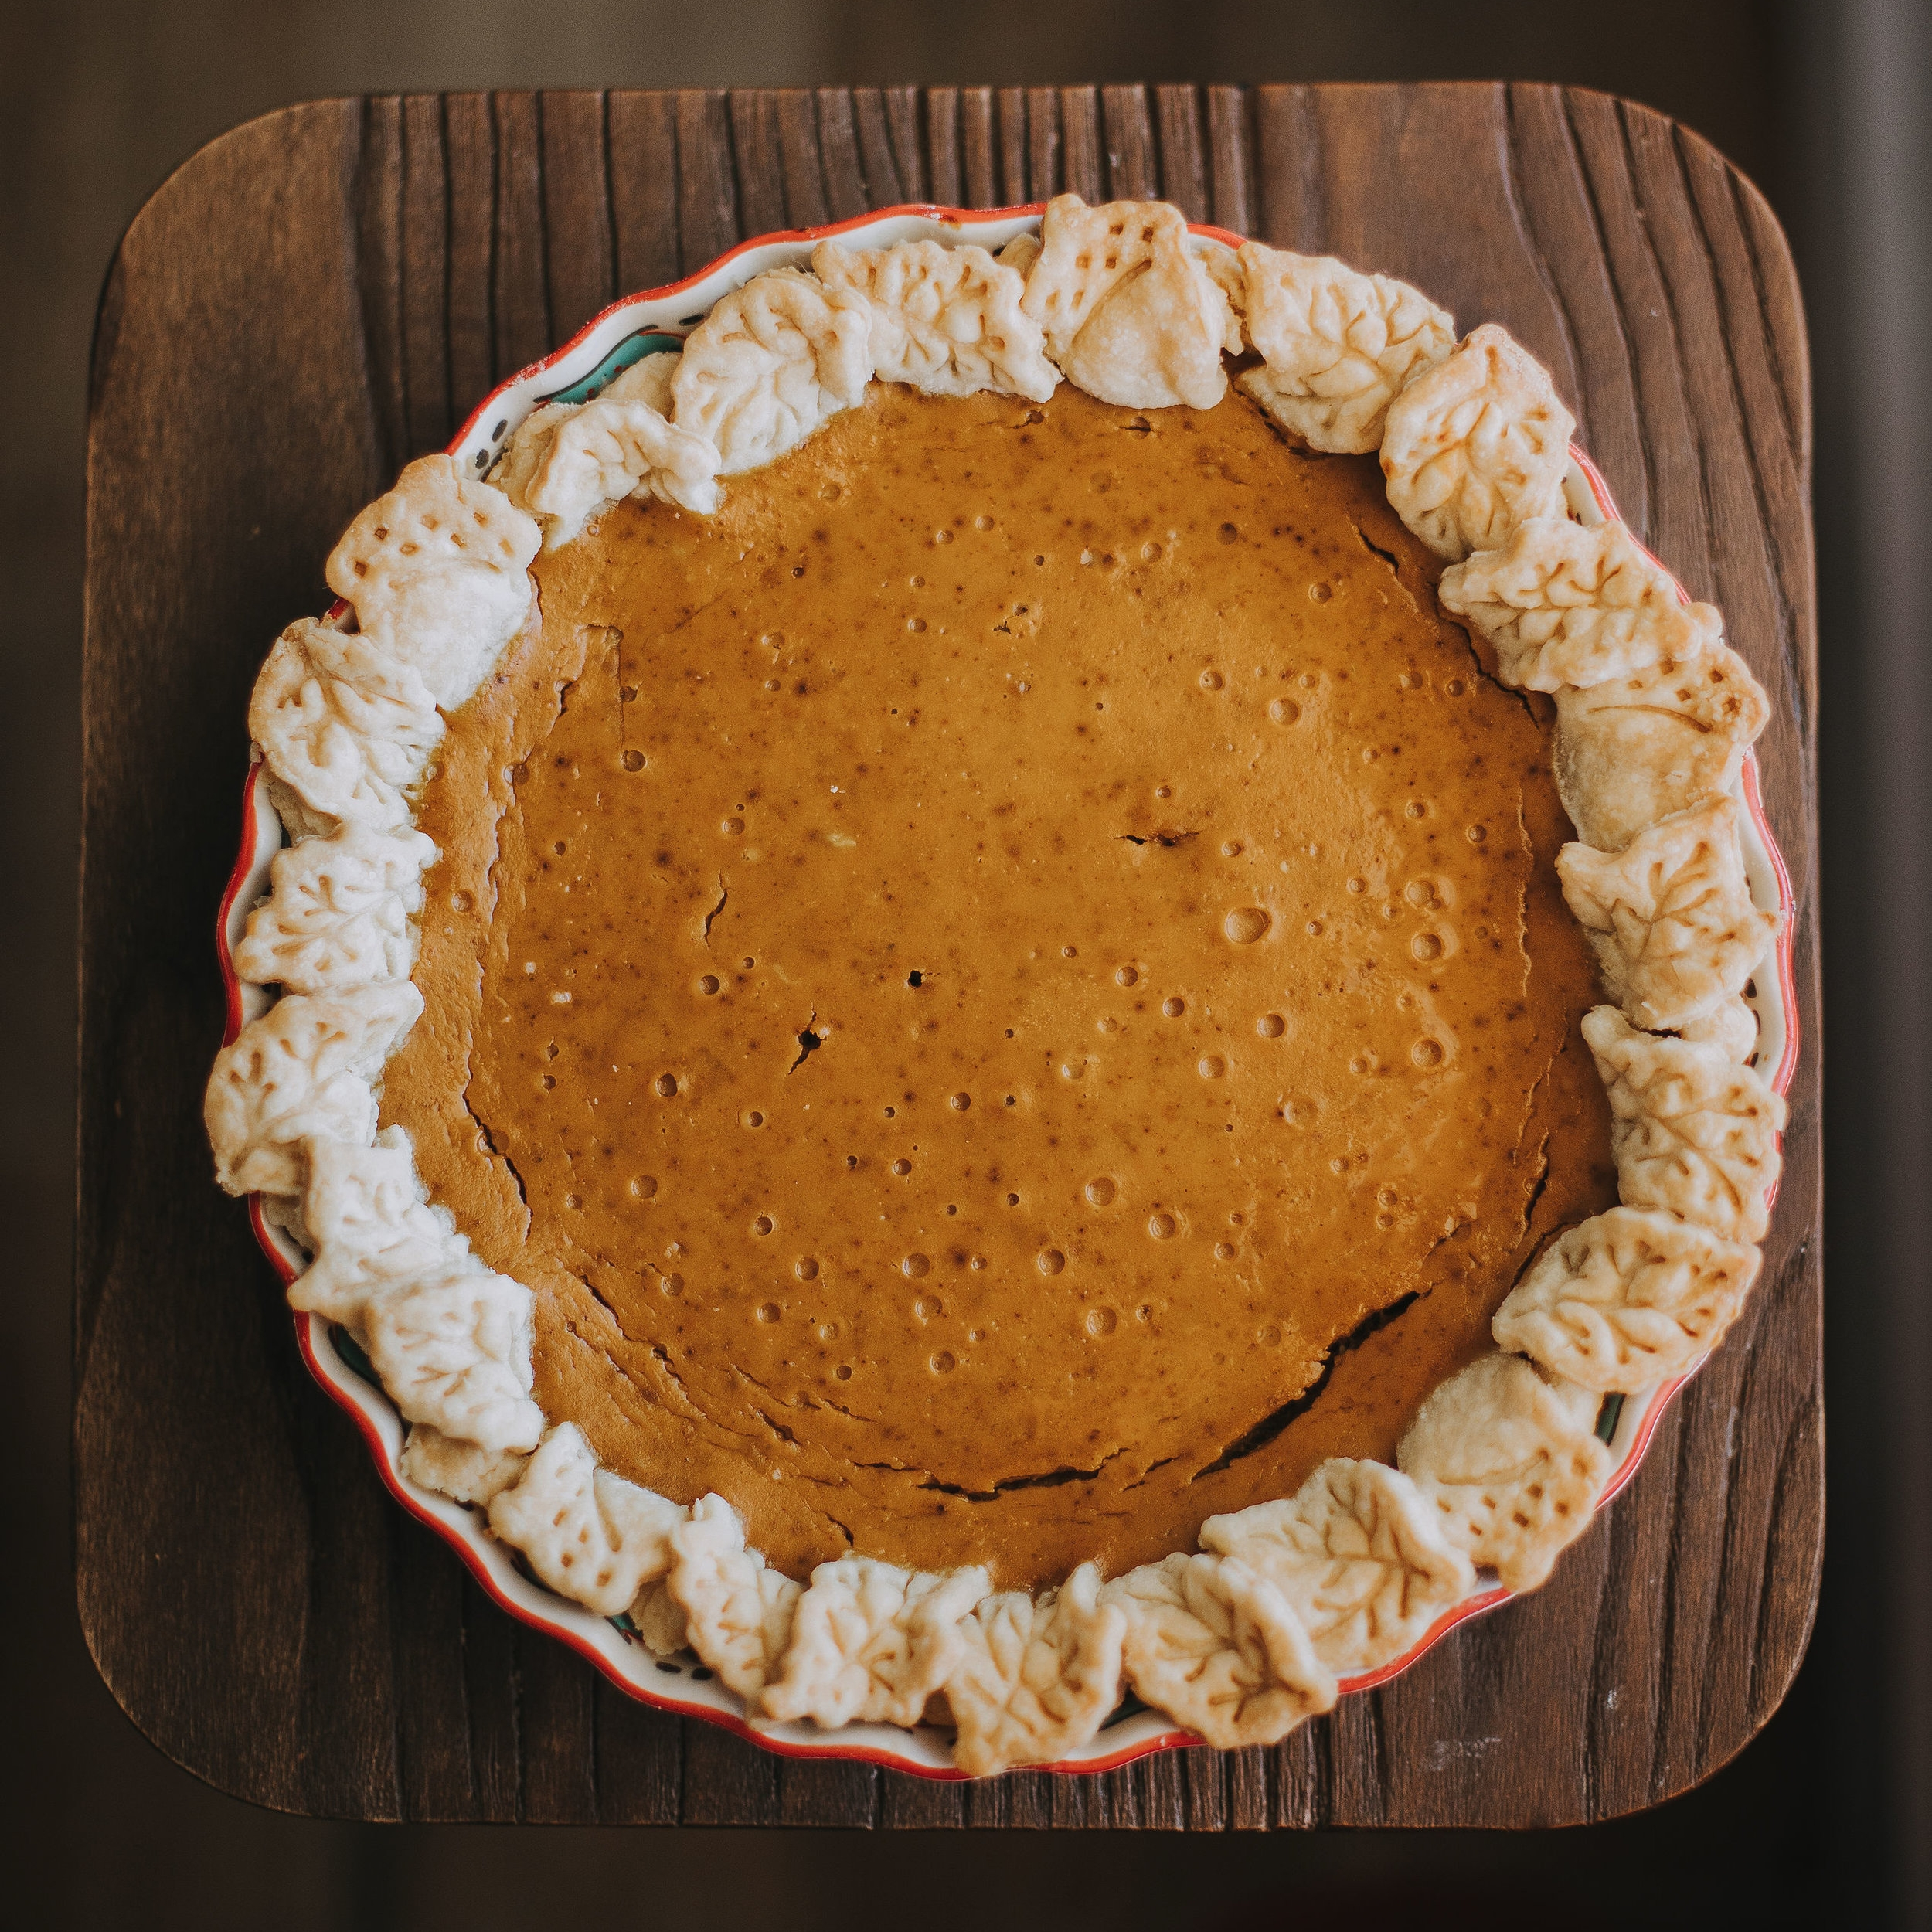 Sarah Lou's Favorite Pumpkin Pie - This recipe is an instant classic and crowd favorite. Plus it's so simple!